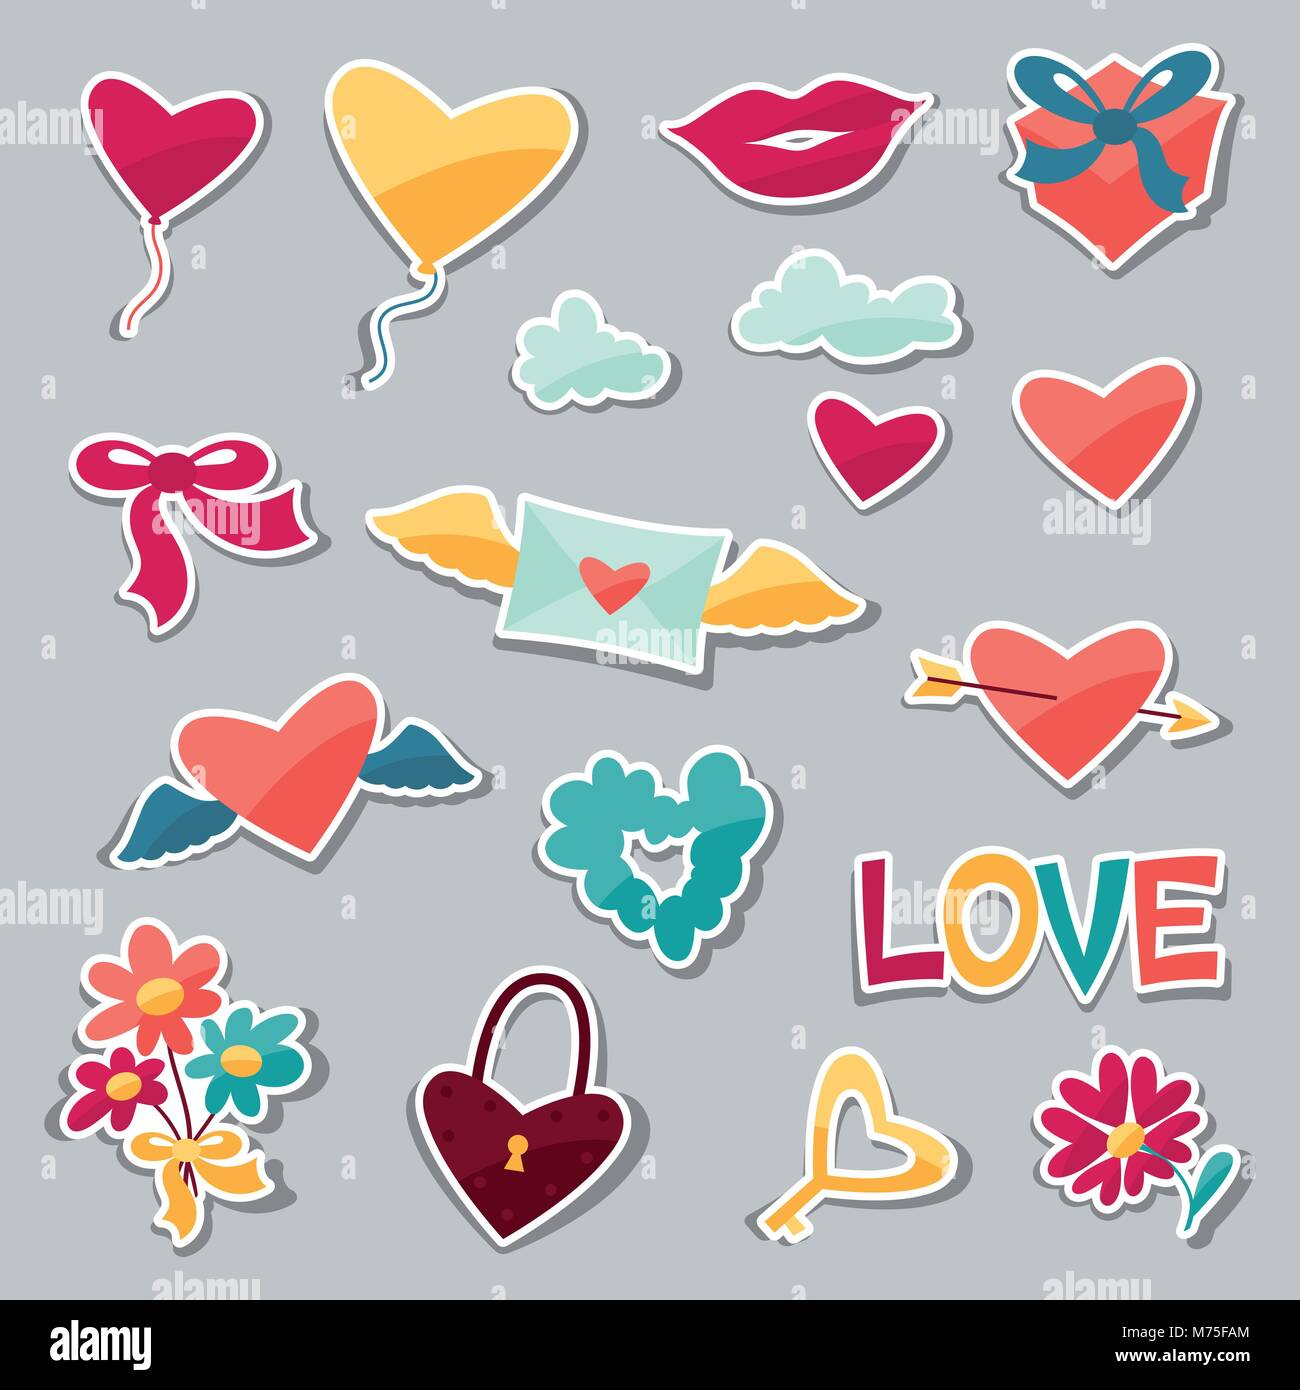 Heart Love Wings Romantic Icon Stockfotos & Heart Love Wings ...